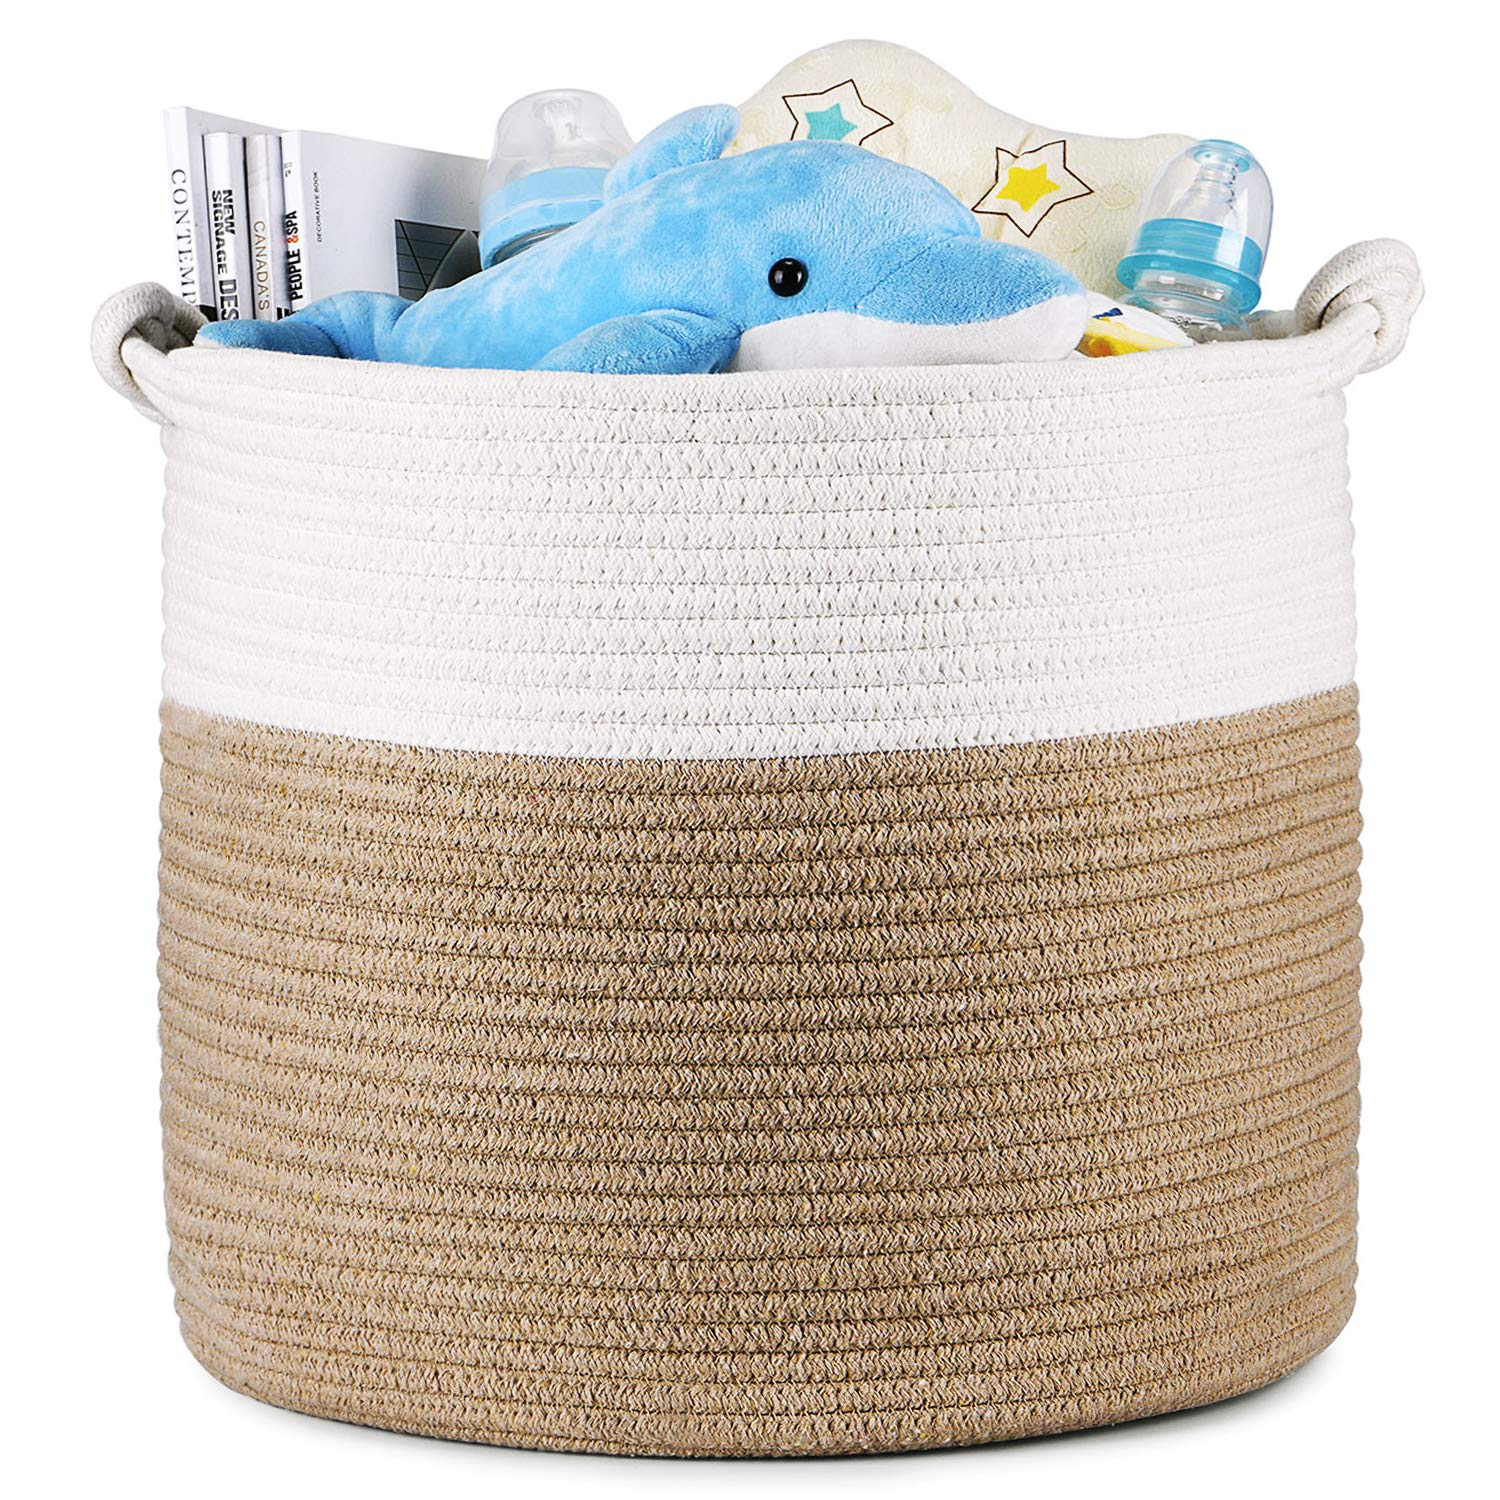 Magicfly Cotton Rope Toy Laundry Baskets, 15 X 15 X 14 Inch Large Baby Nursery Organizer, Toys and Baby Storage Blankets in Baby Nursery or Kids Room, Beige White